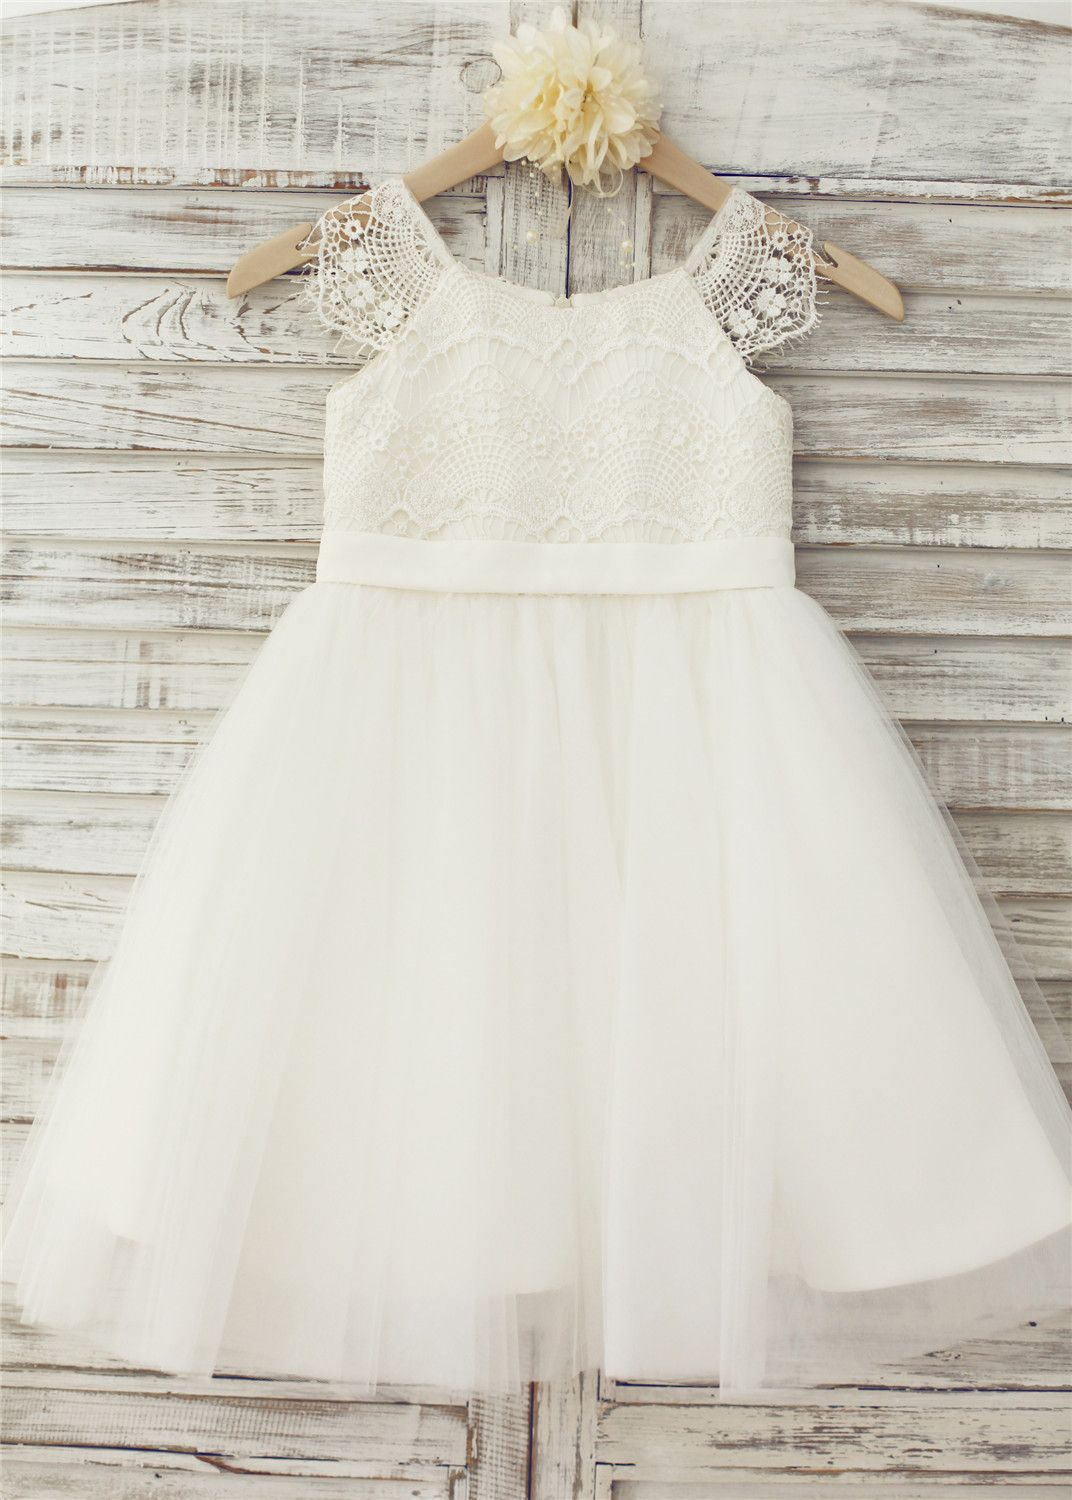 c2a8b7c93363 The dress is made of high quality satin tulle lace fabric.Delicate ...